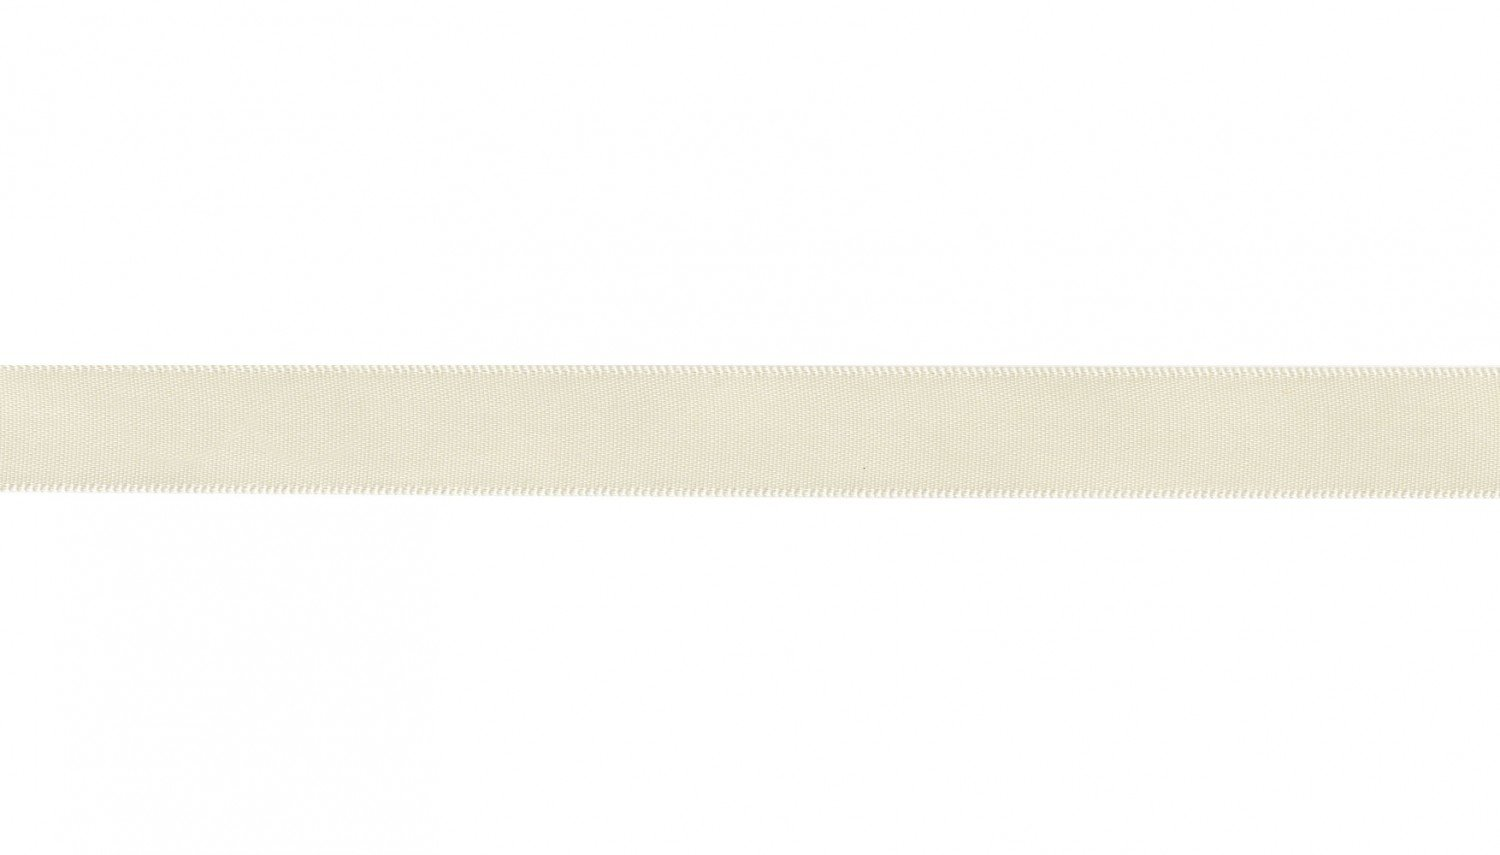 Ribbon, DoubleFace Satin 5/8 Antique White